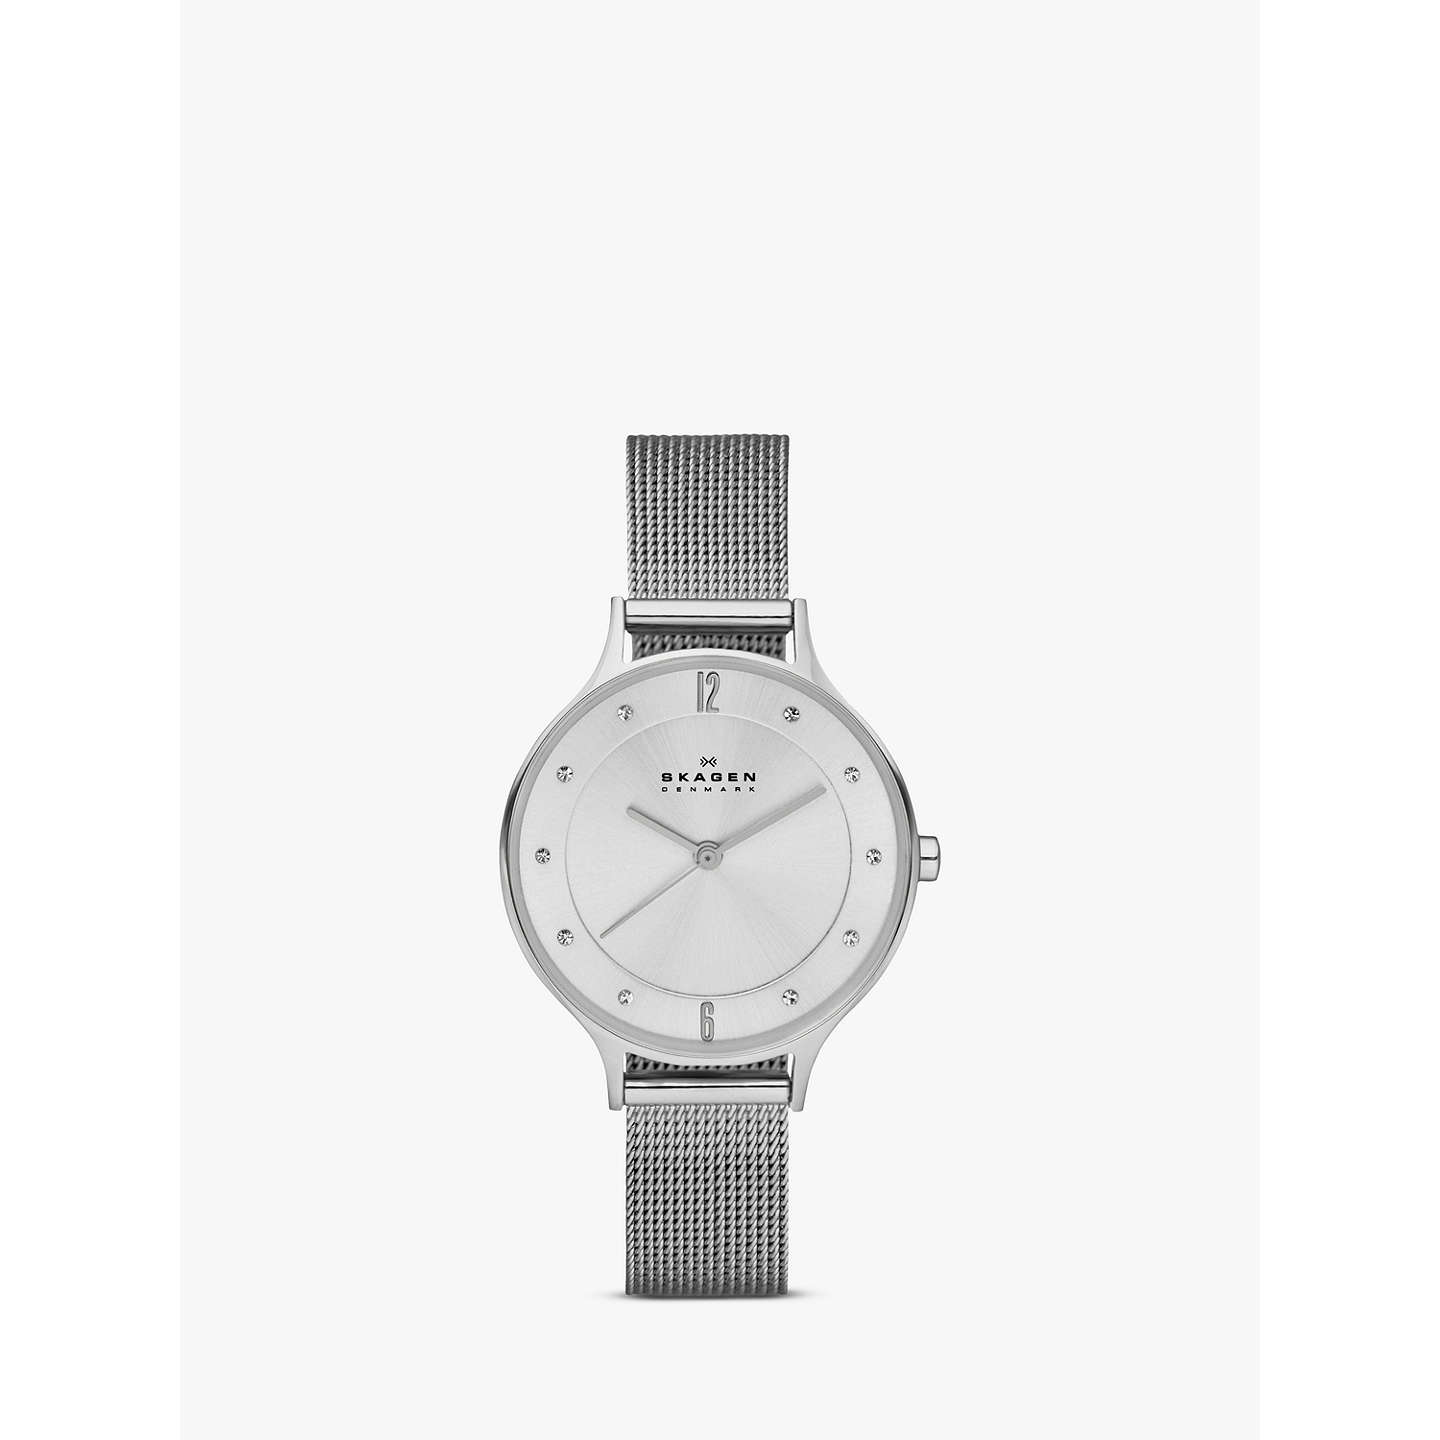 worth band silverwhiteside watch watches silver metal bianco mesh tony classic